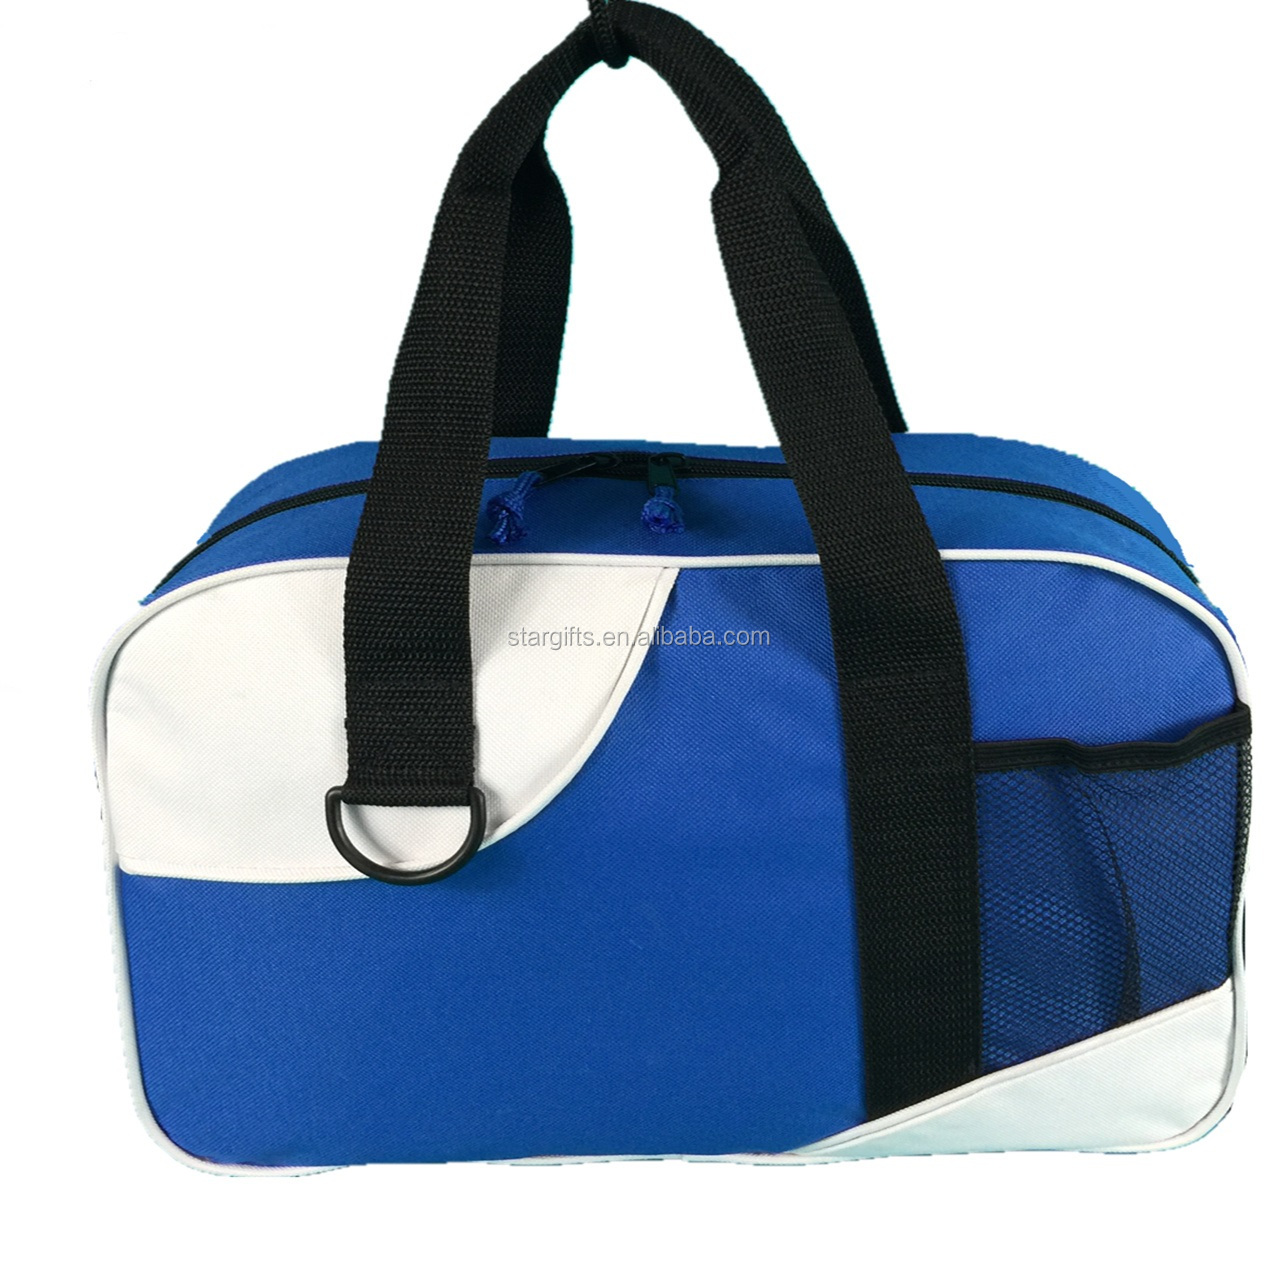 "12"" 14"" 18"" 21"" Duffle Bag Custom Medium Size Unisex Sport Gym Duffle Travel Bags With Two Tone"